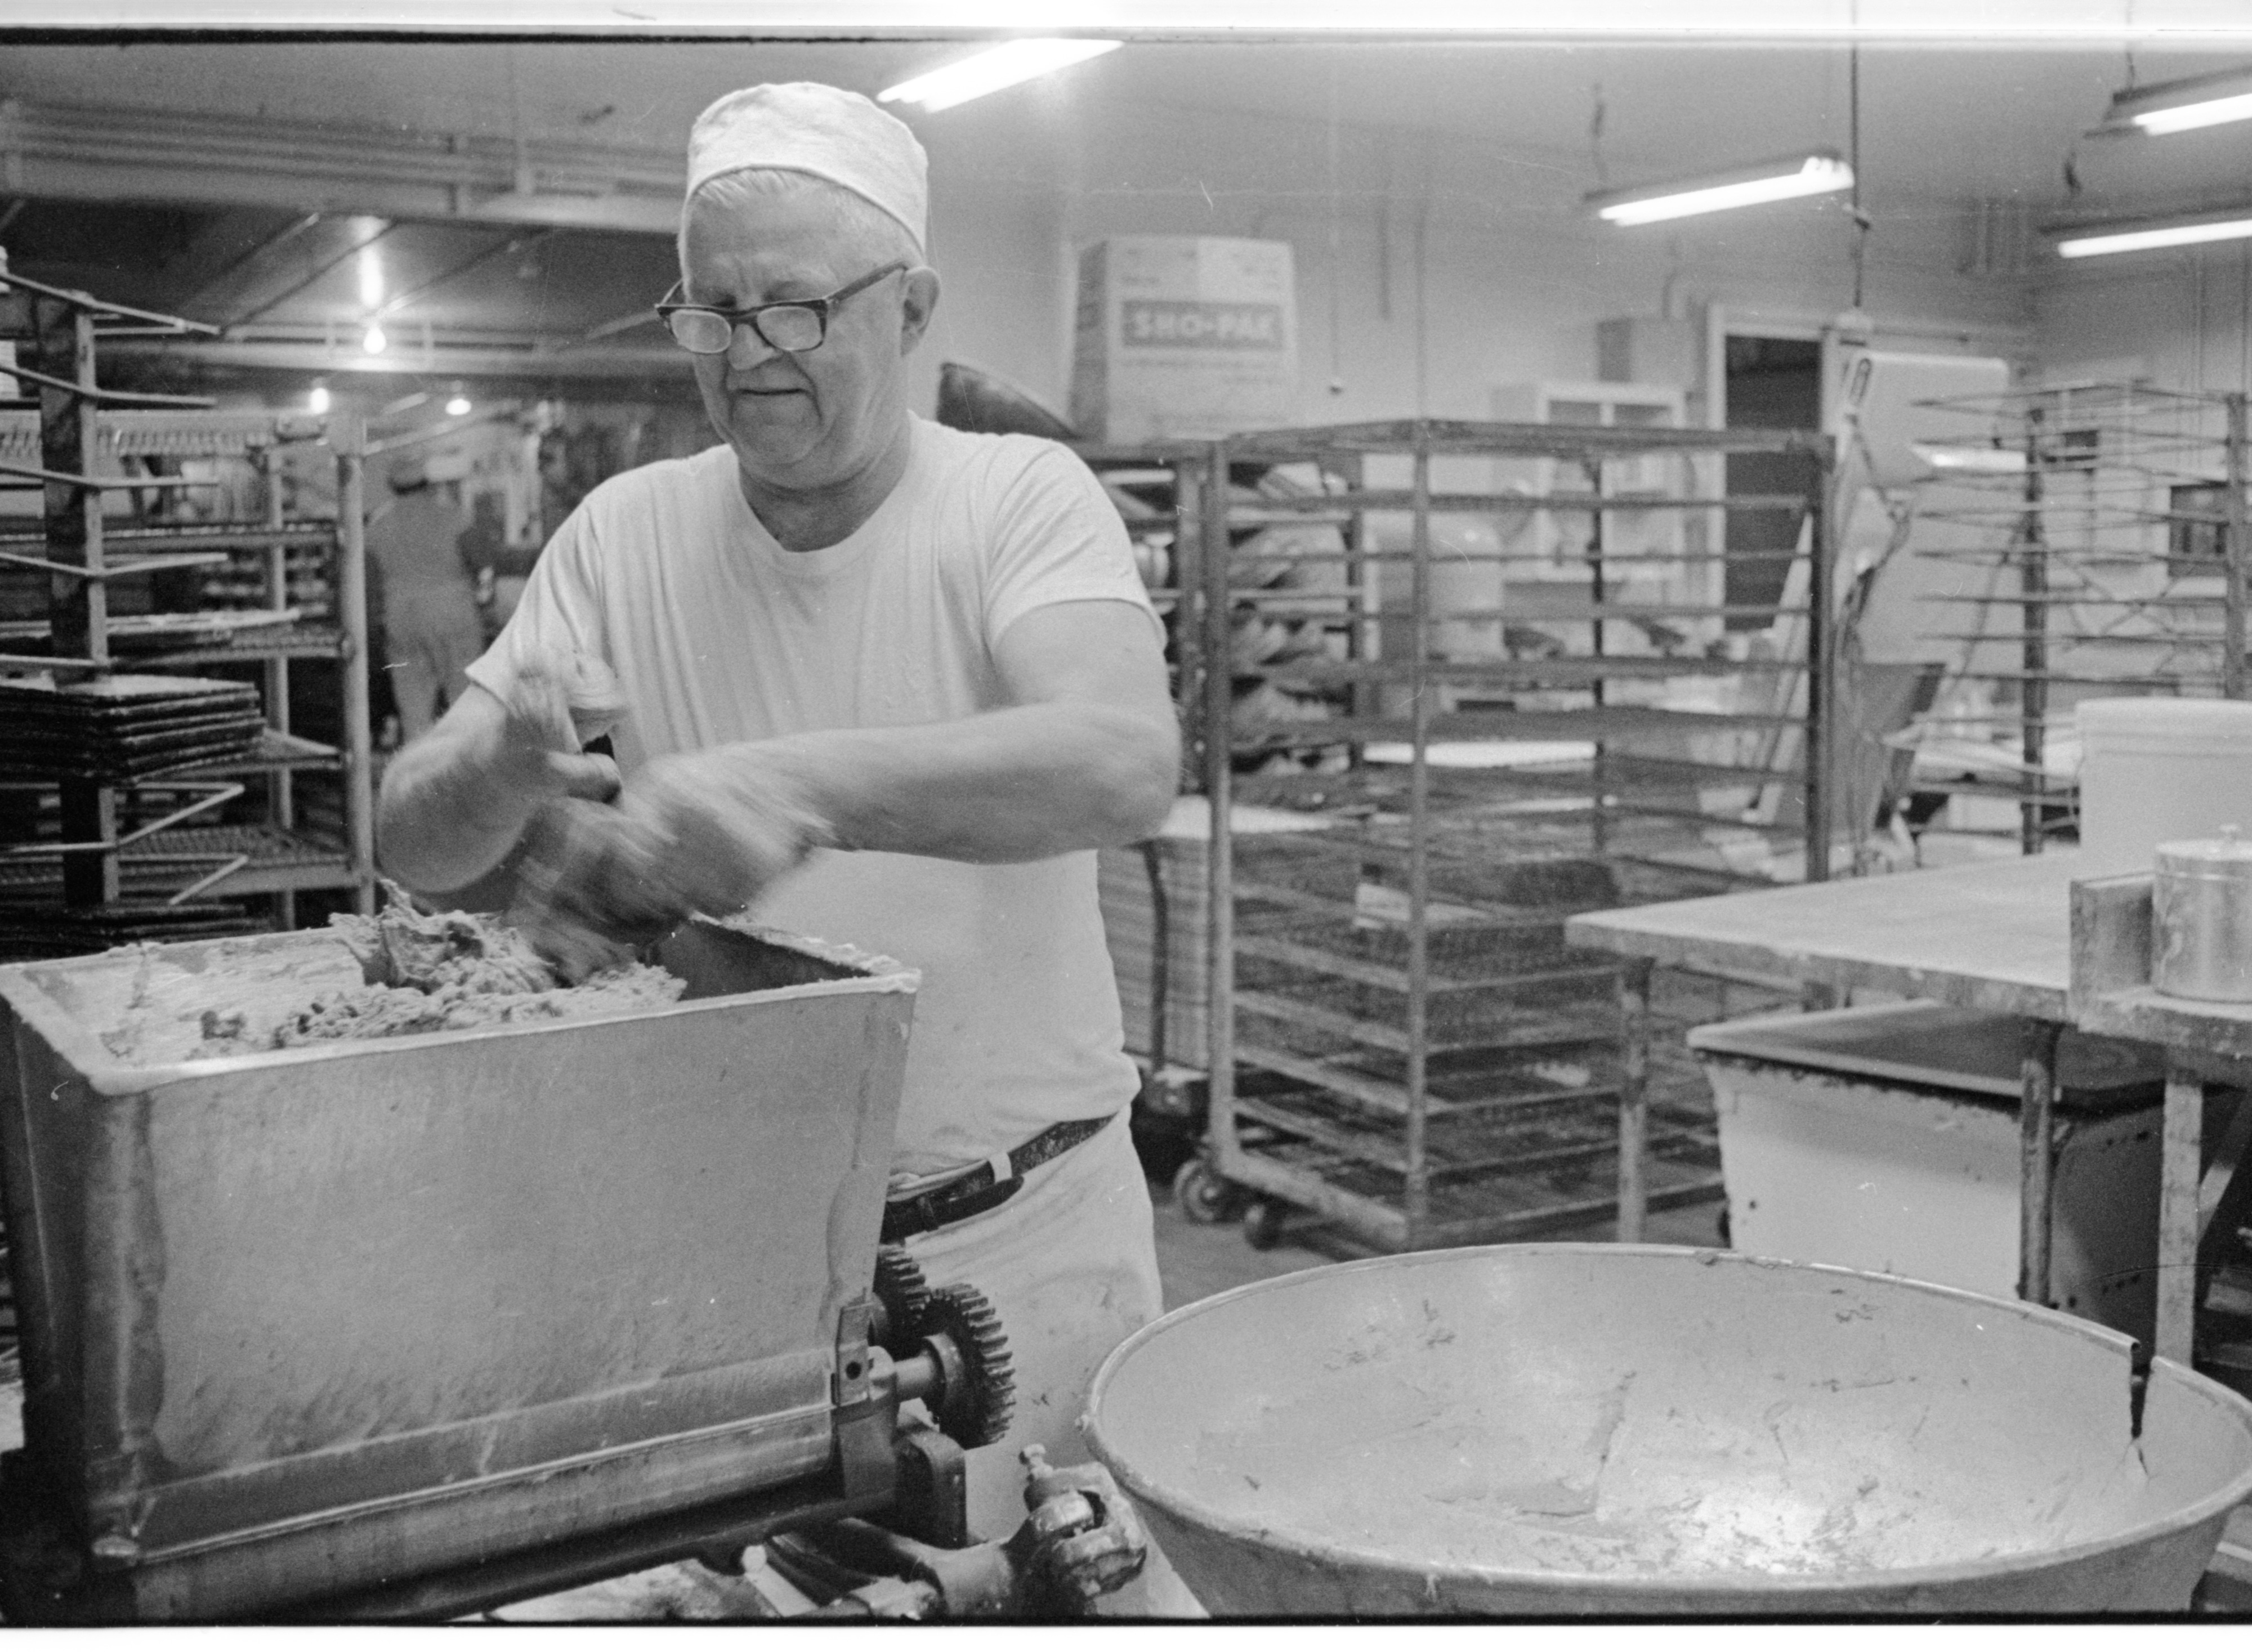 Clifford Hedlund Battles With the Cookie Dough at Quality Bakery, April 1974 image